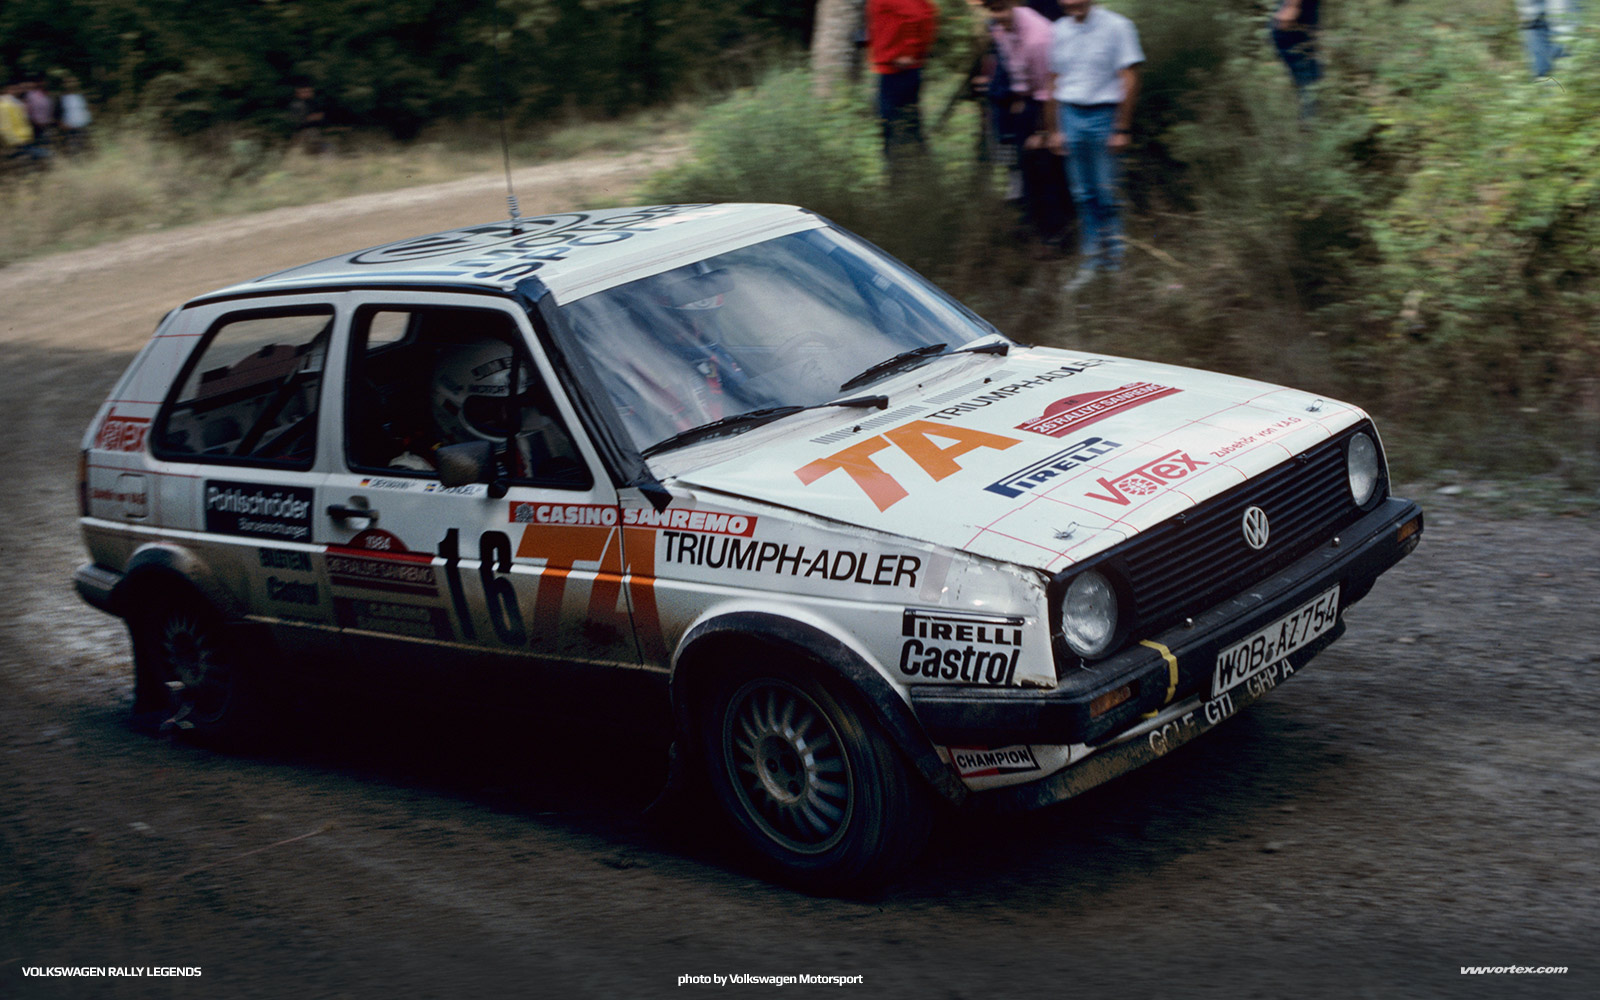 volkswagen-rally-legends-397